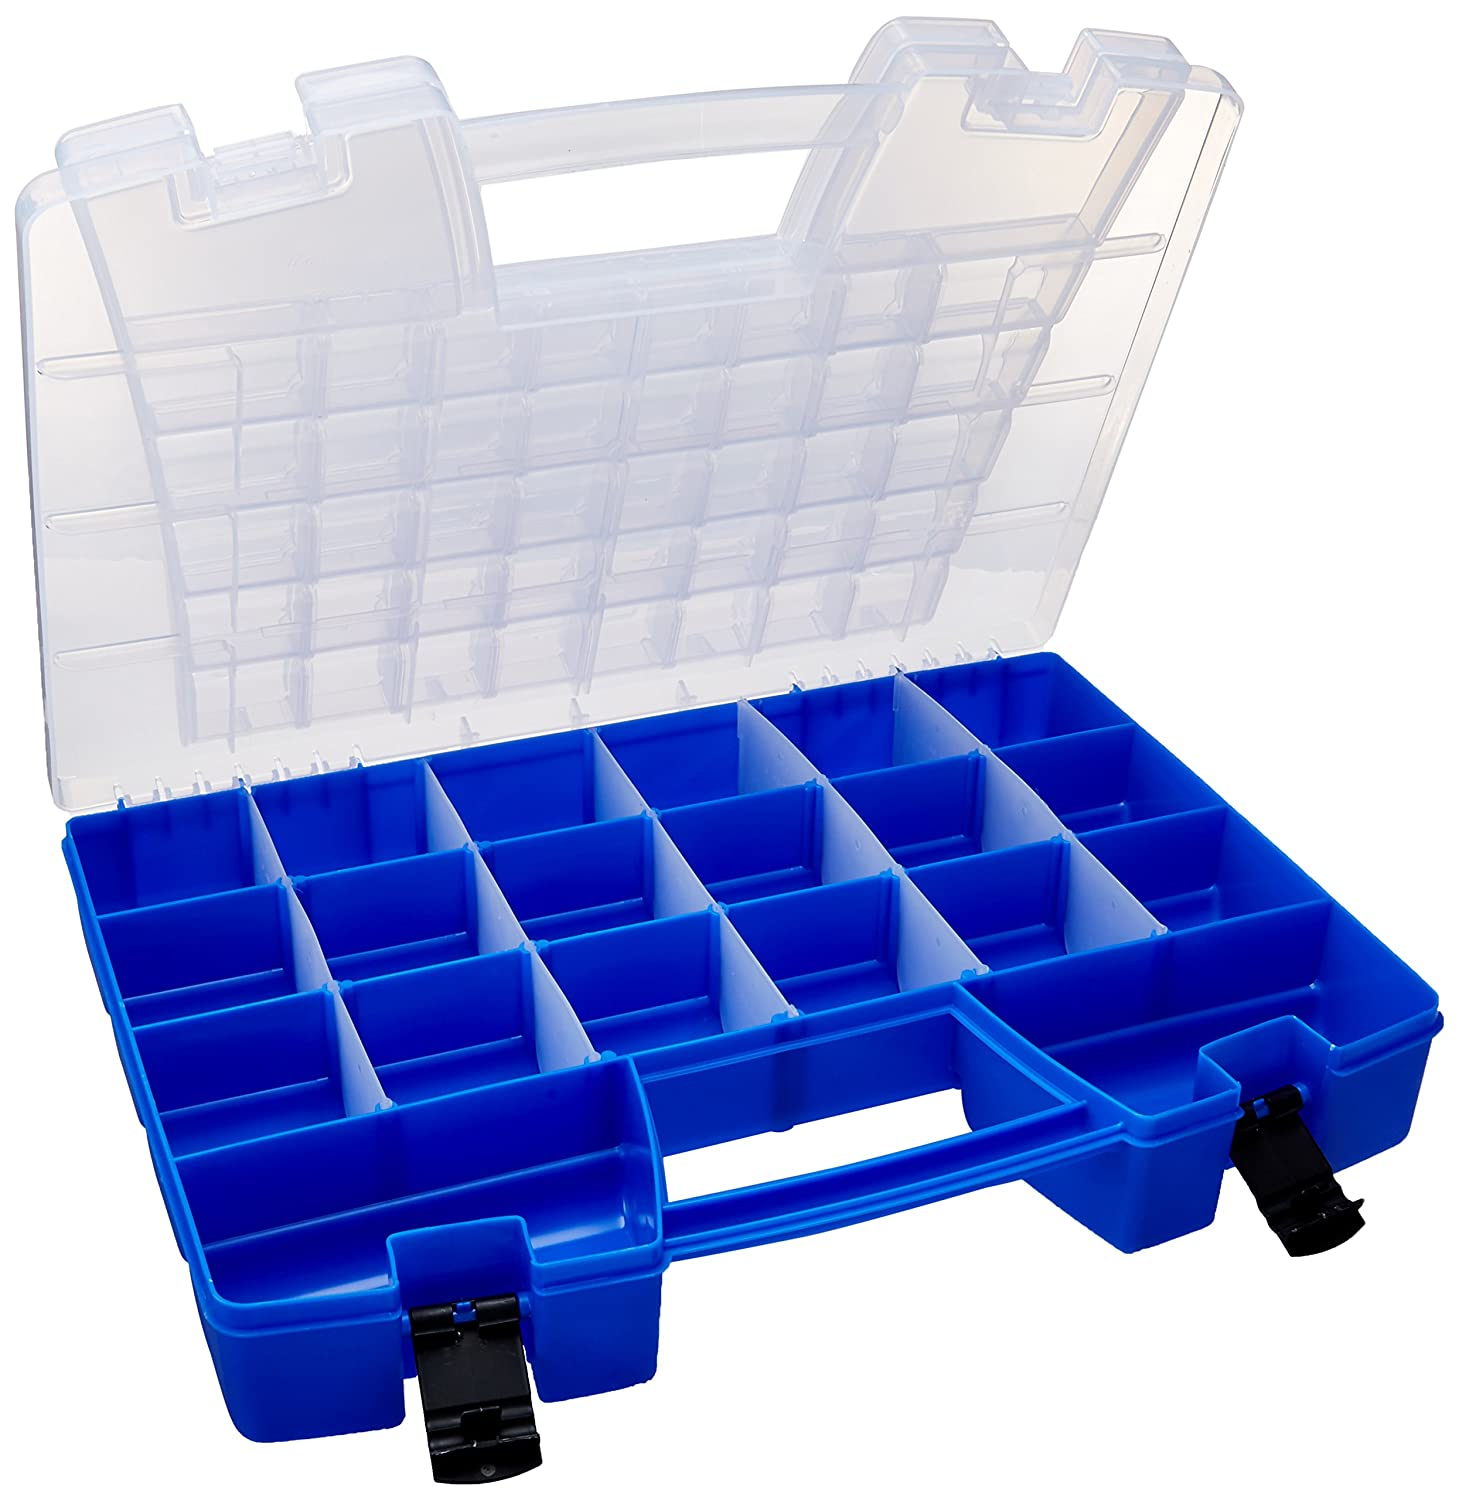 Akro-Mils 06118 Plastic Portable Hardware and Craft Parts Organizer, Large, Blue